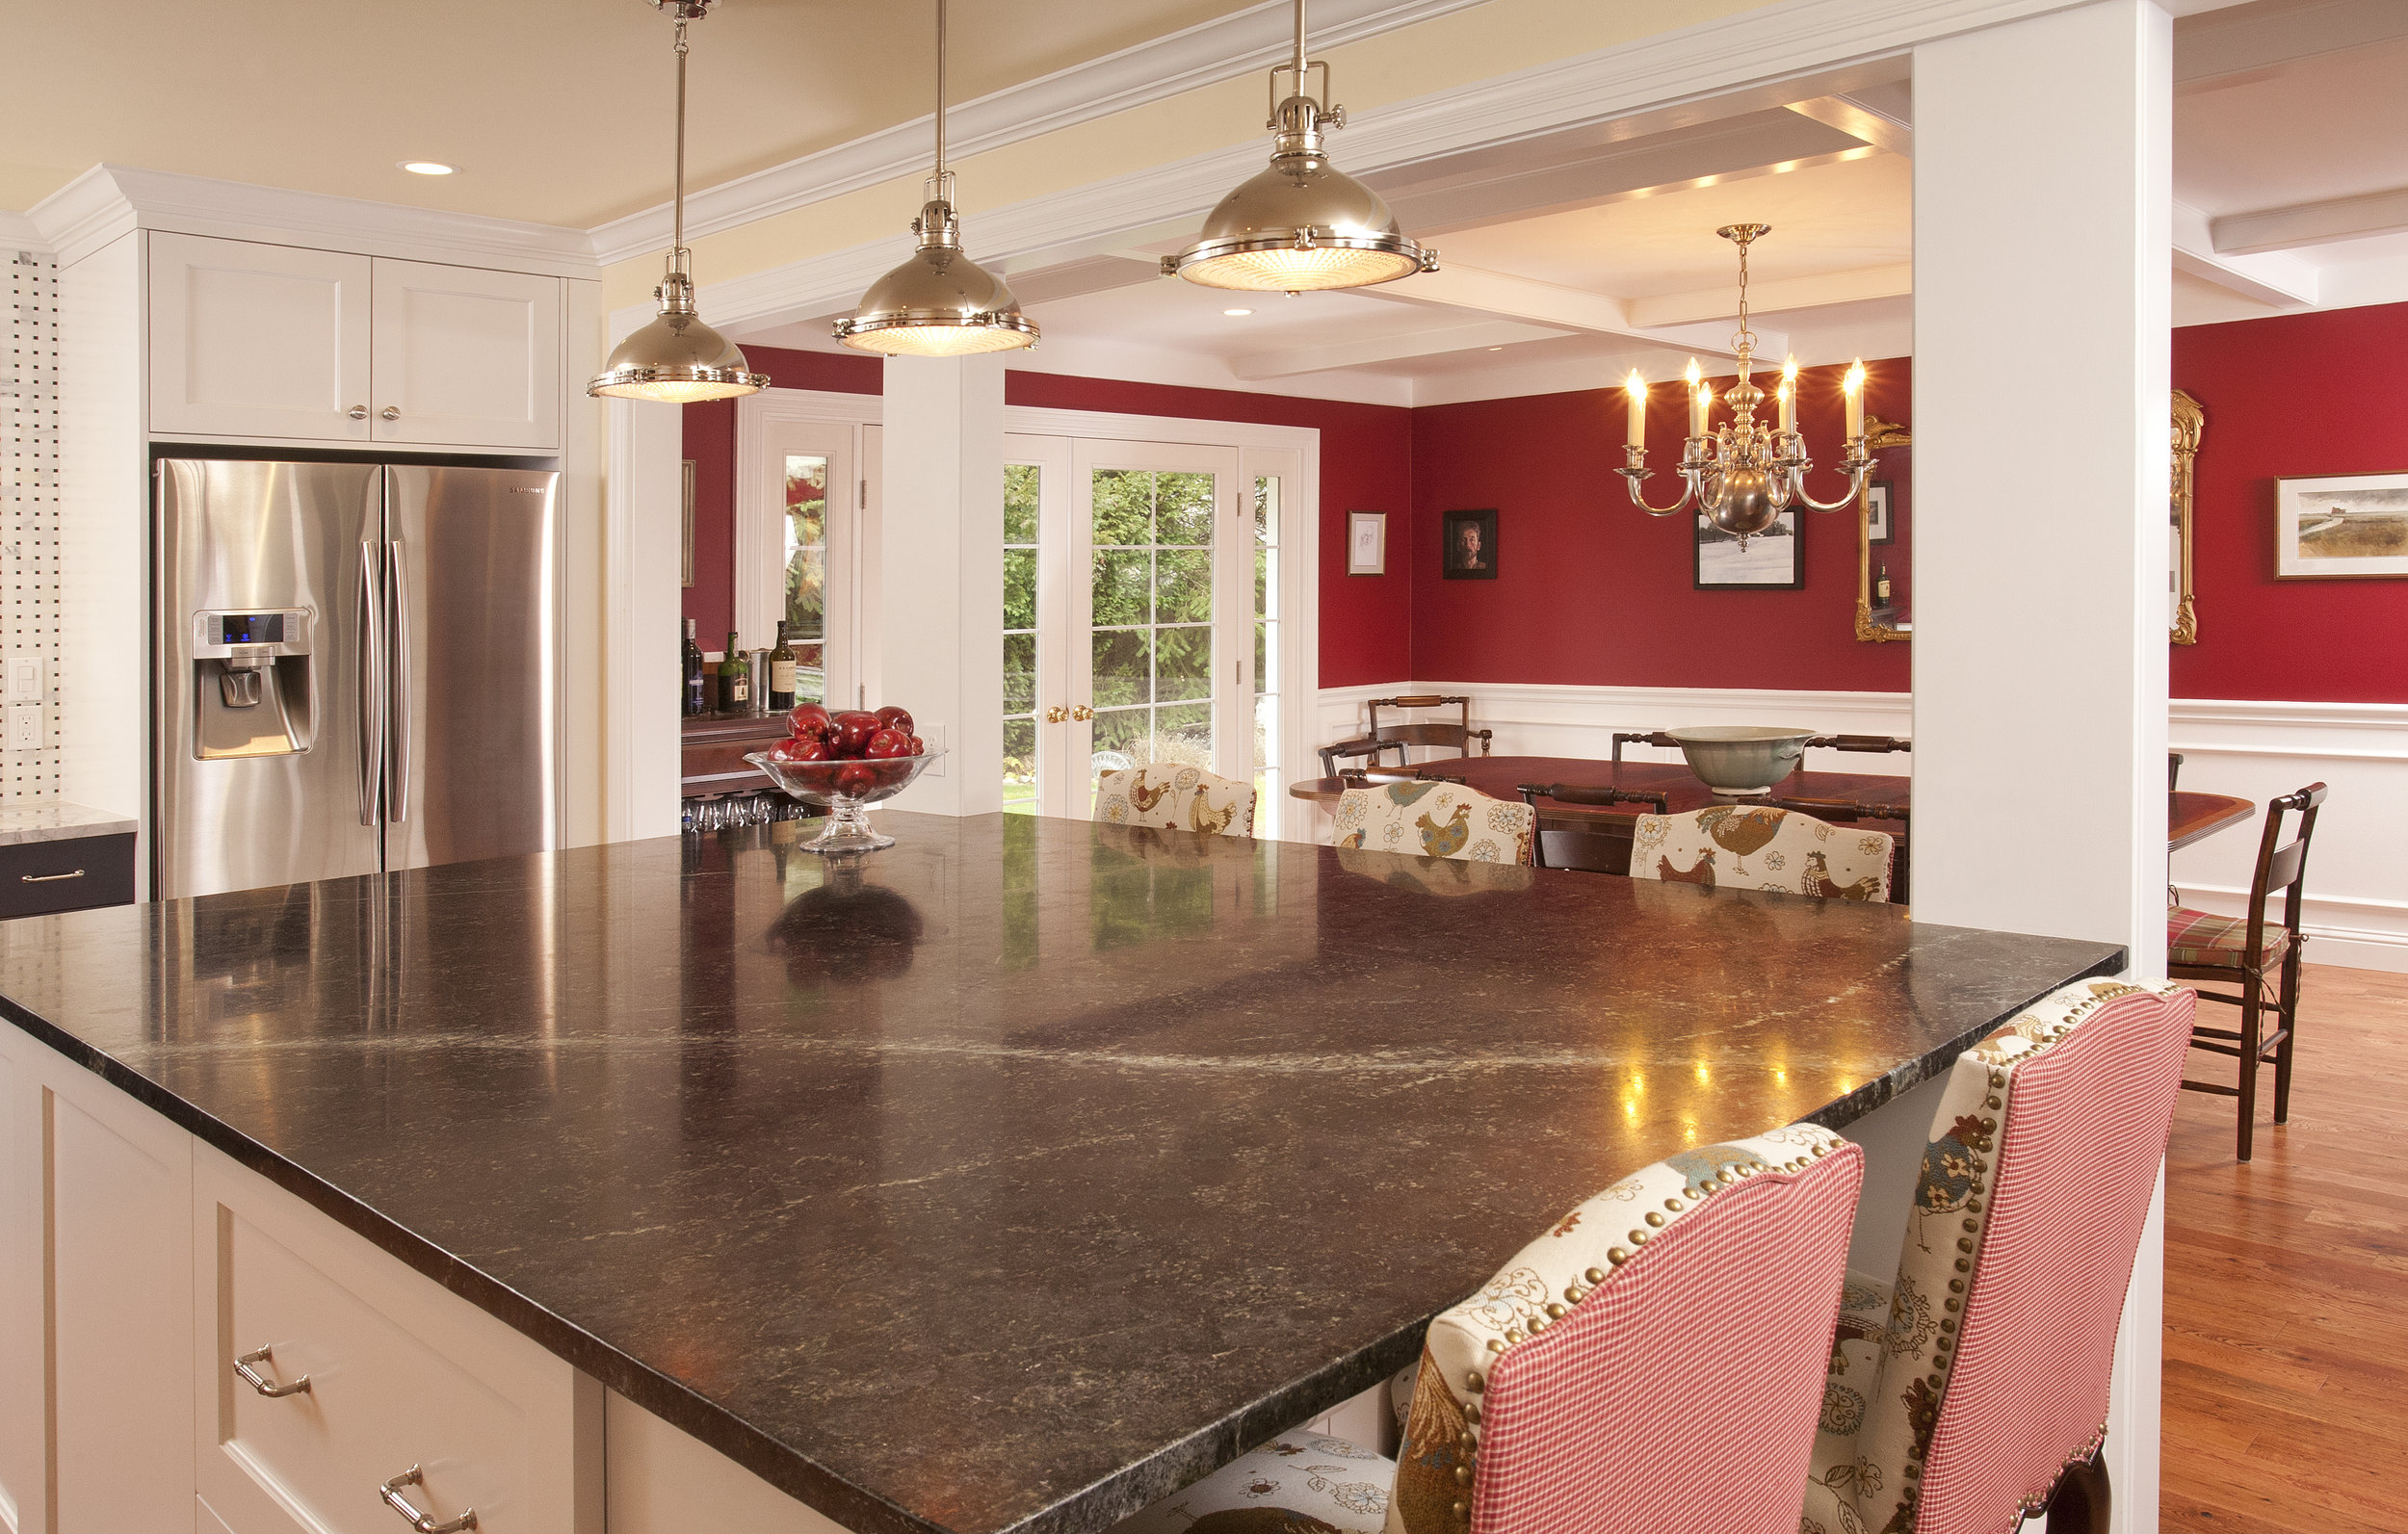 Woodiville Country Kitchen 5.jpg